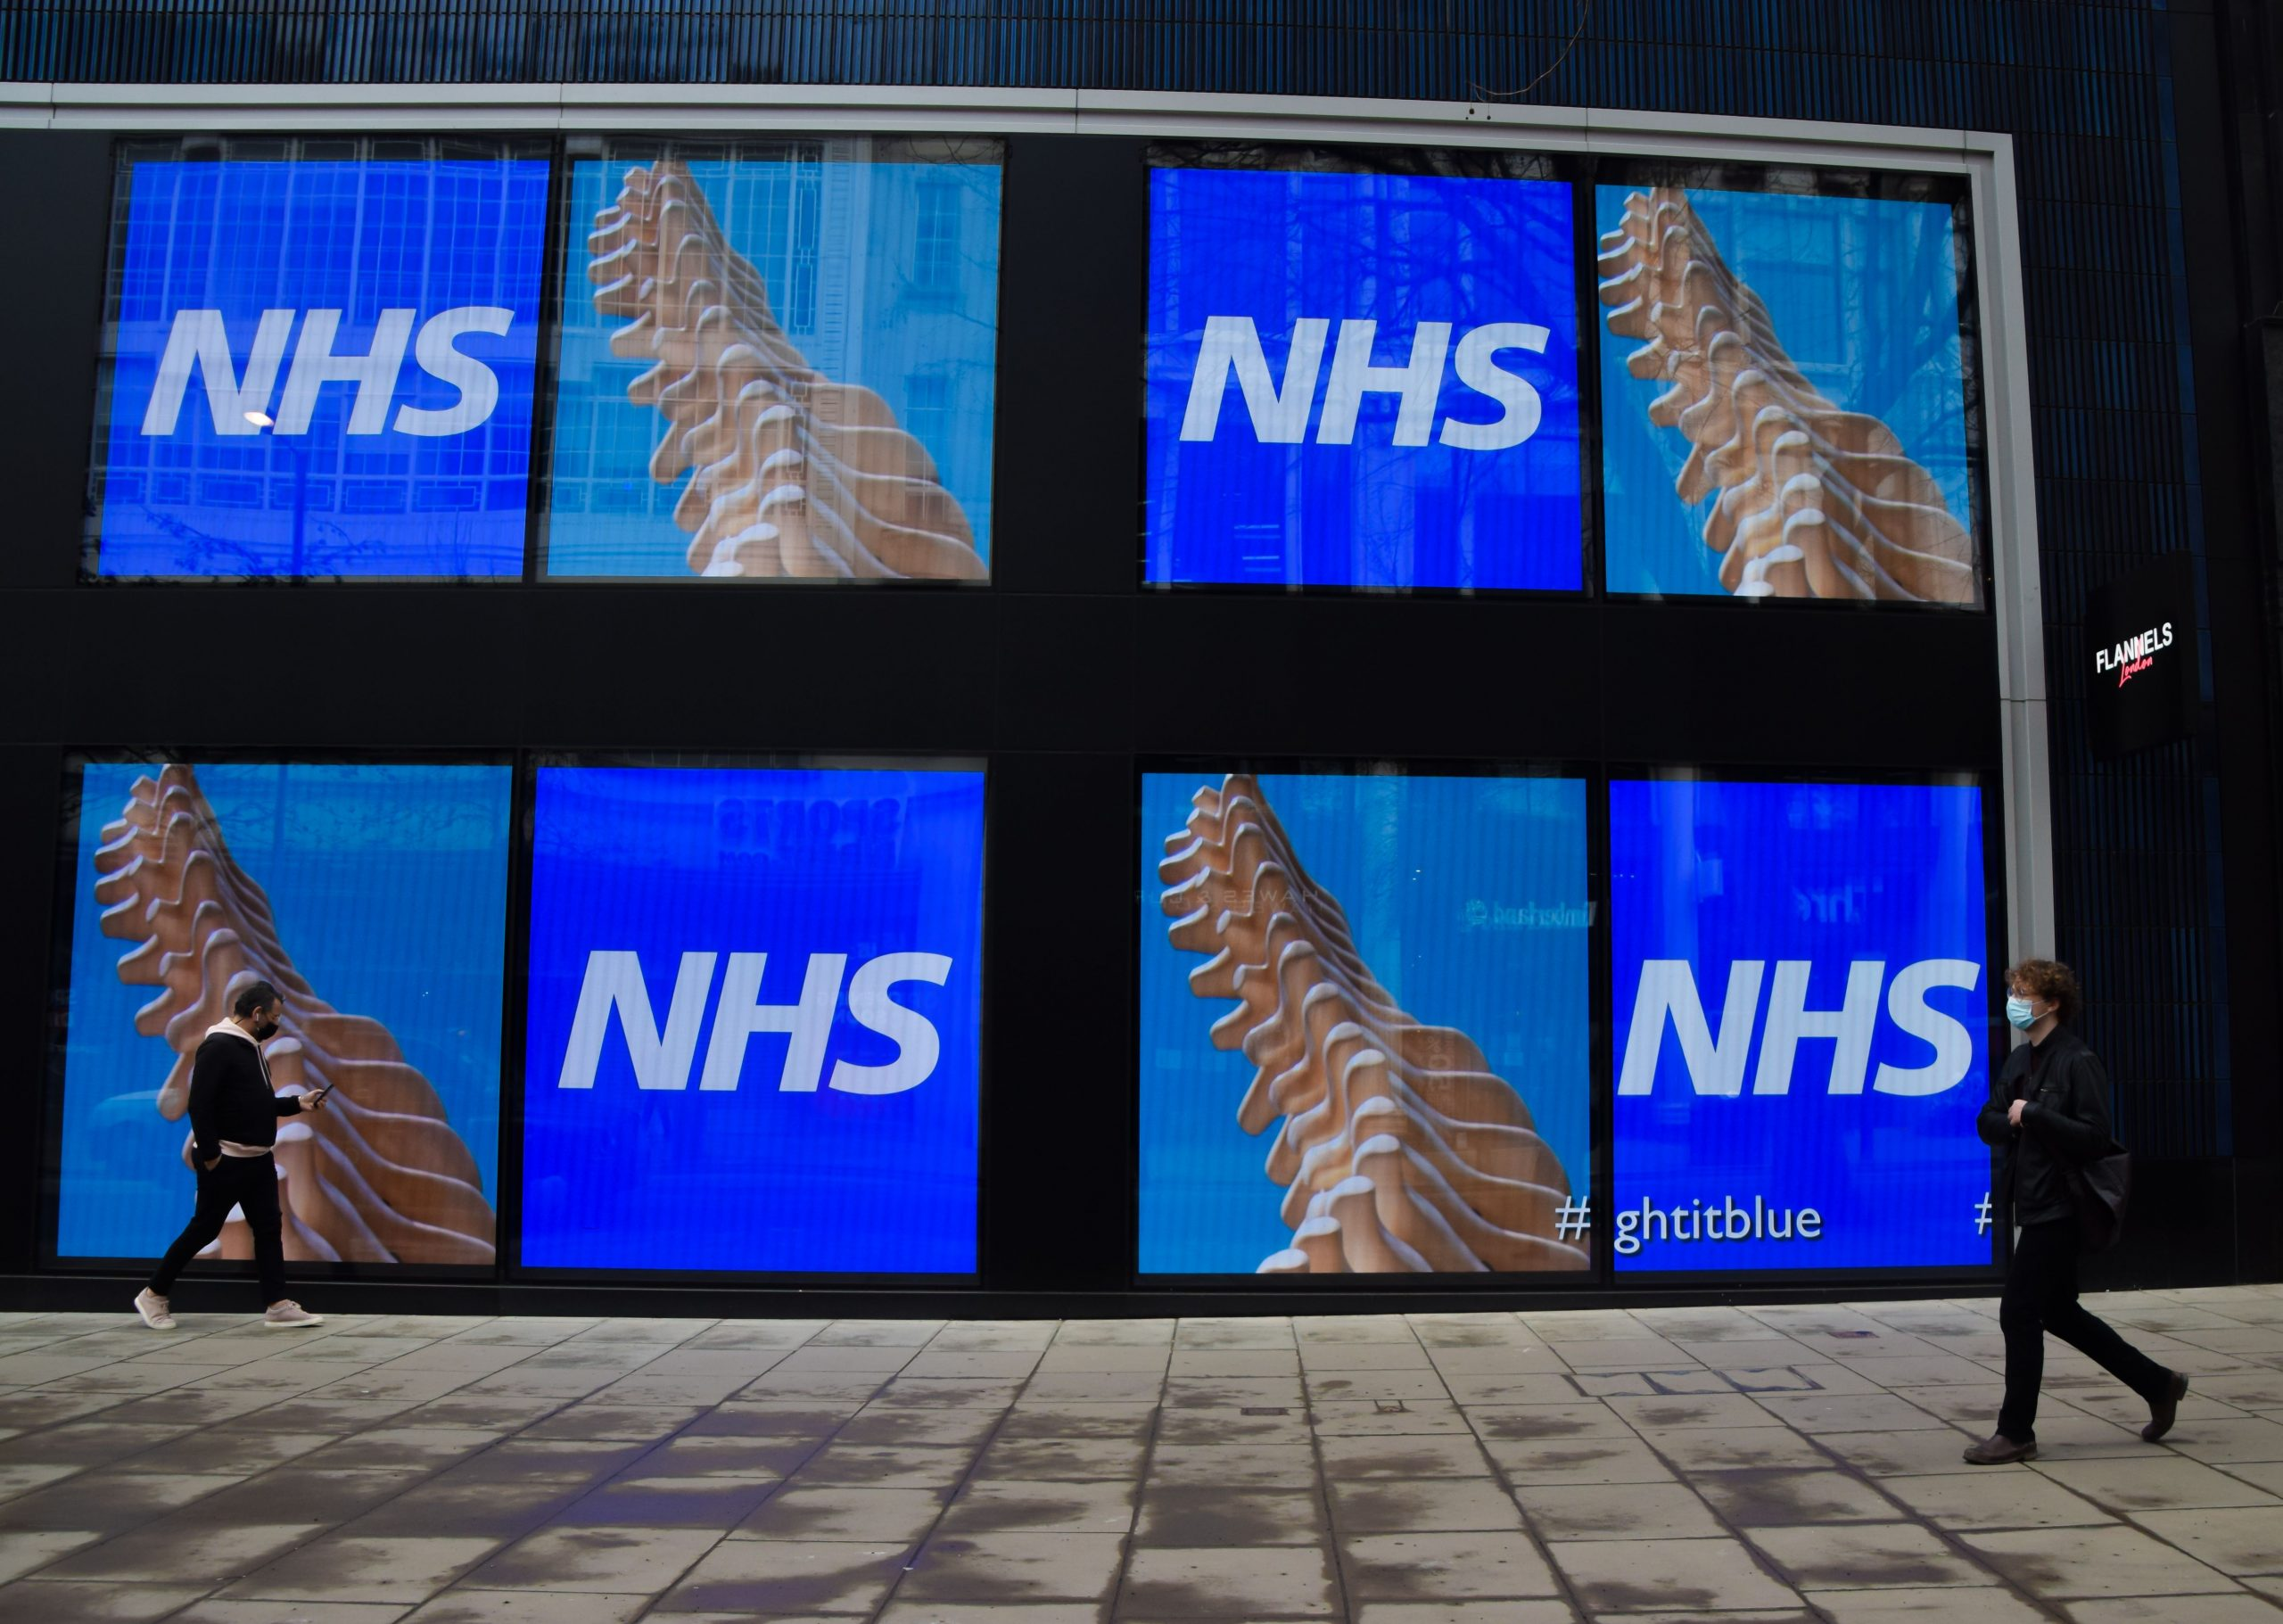 Major project reduces inpatient falls in hospitals and saves NHS £13m